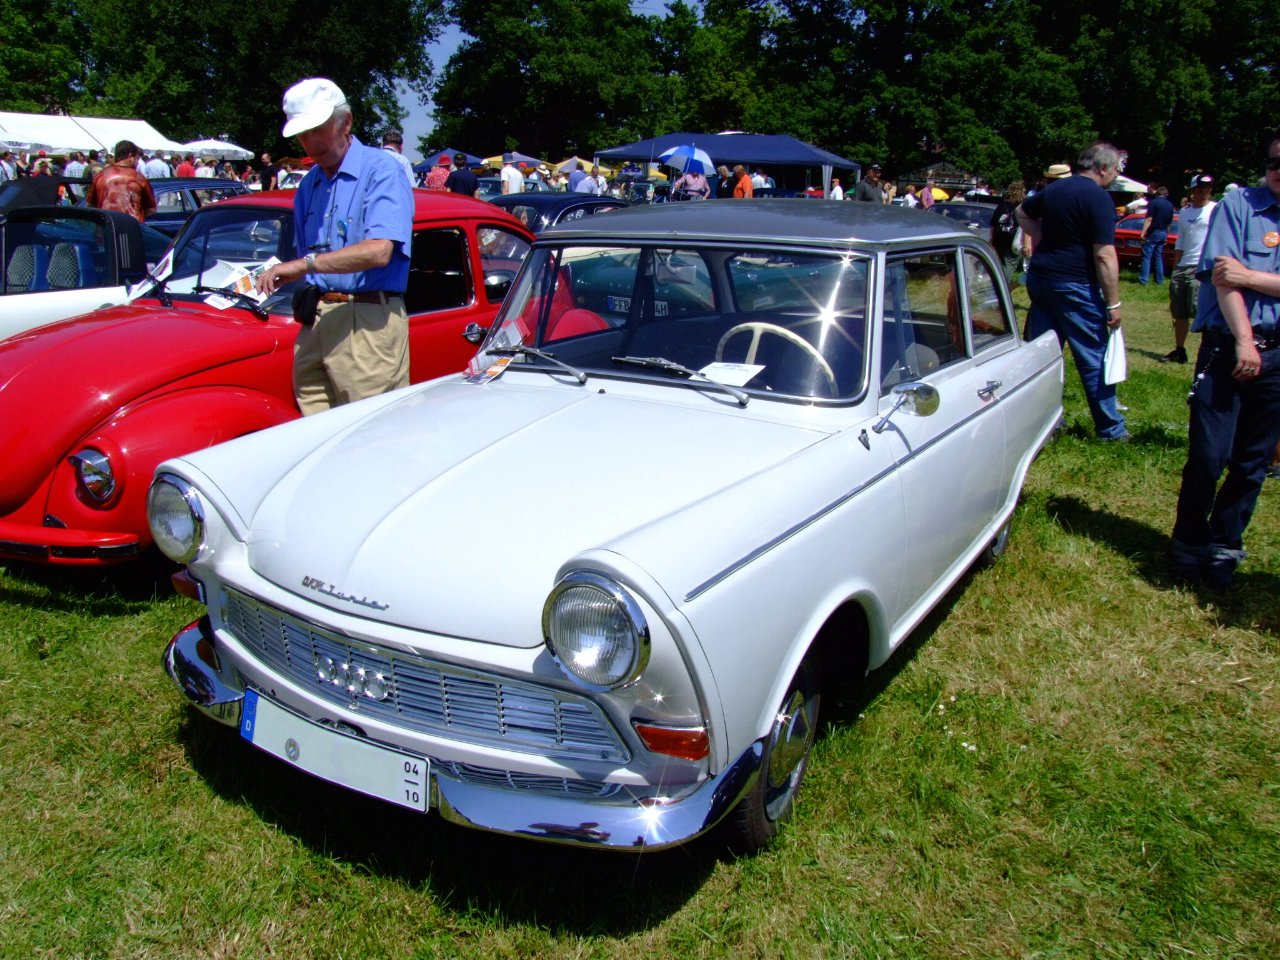 The car was first produced by